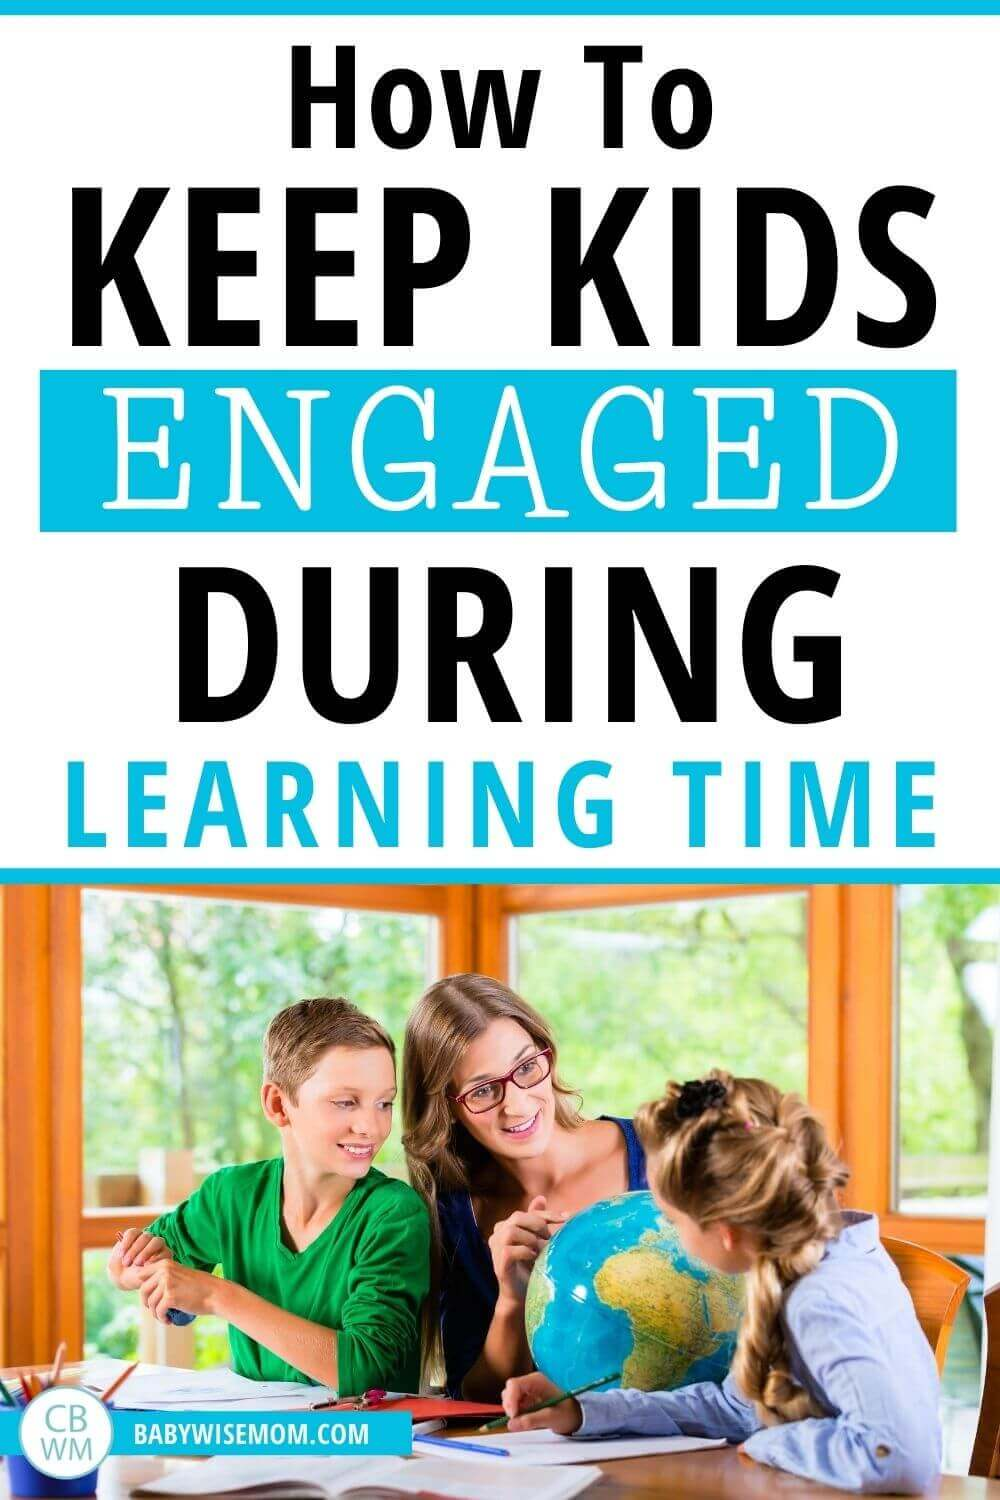 Keep kids engaged during learning time pinnable image